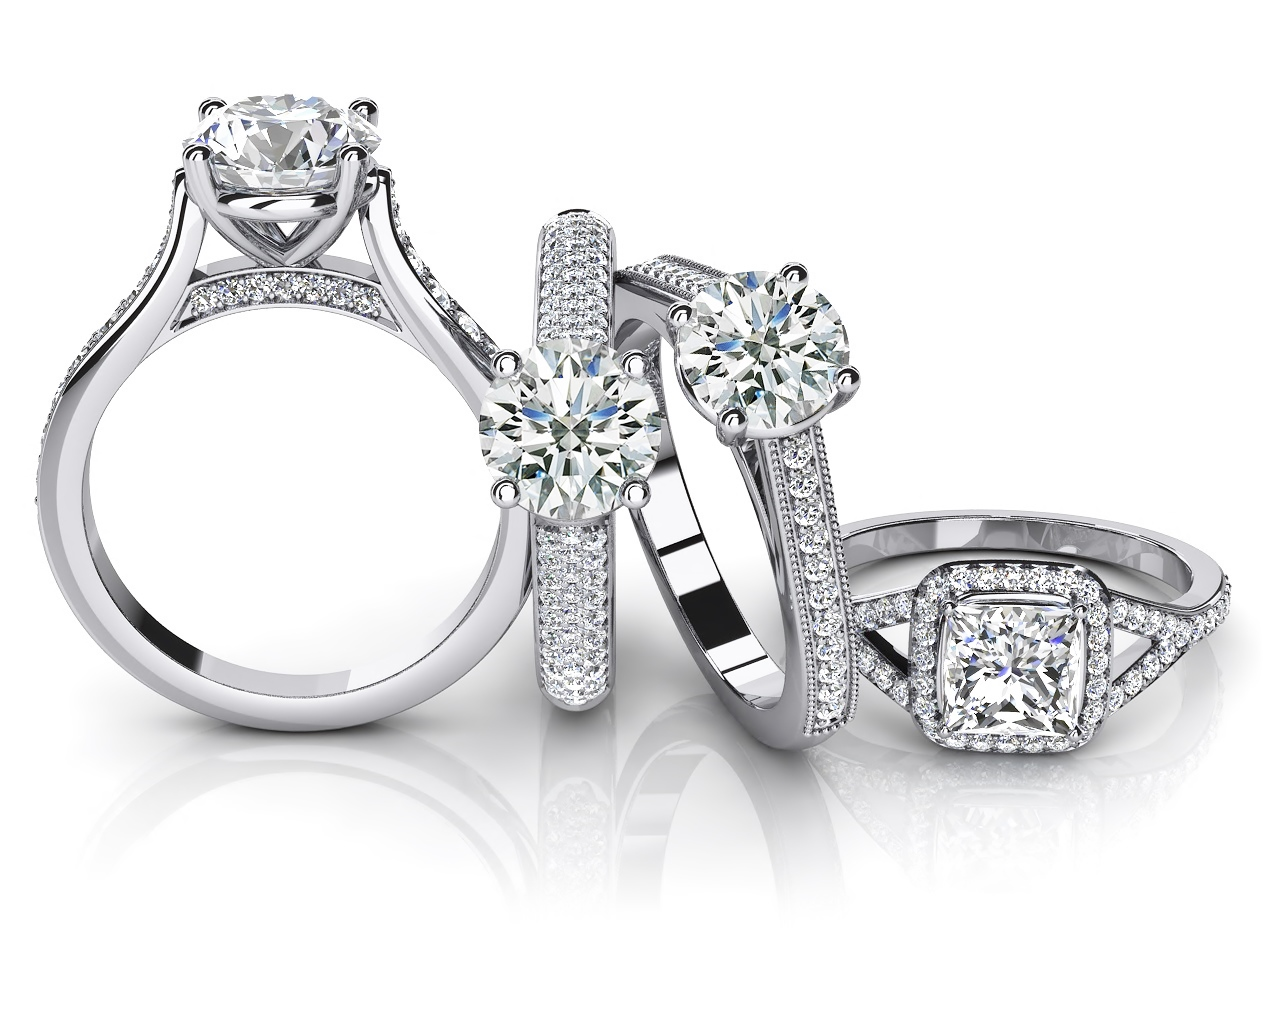 Tesoro Boston Engagement Rings